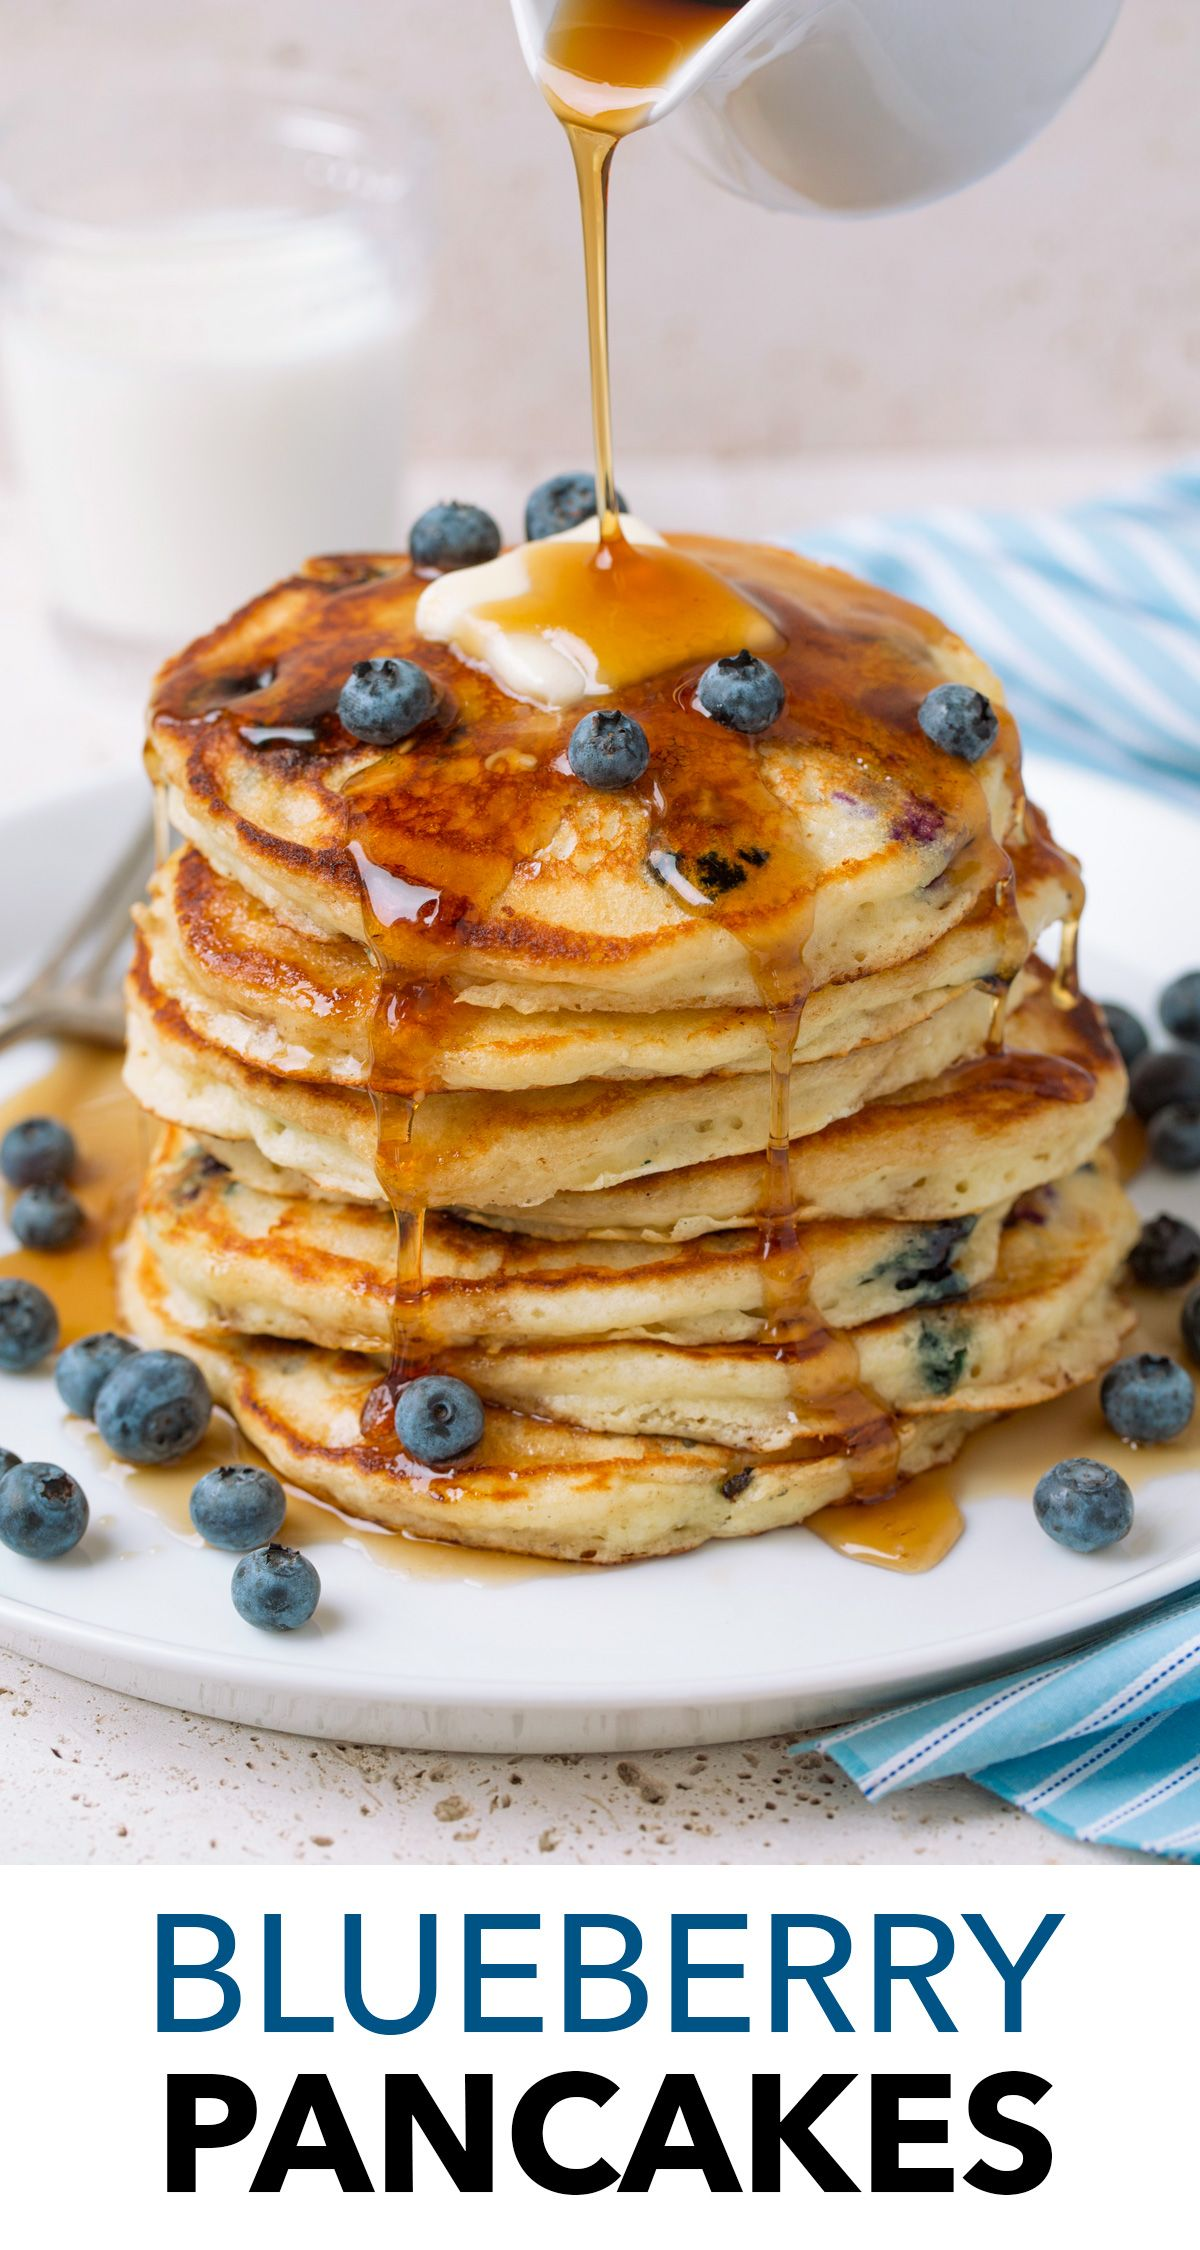 Best Blueberry Pancakes These Are The Tastiest Way To Start The Weekend Mornings They Re Made Wi Pancakes Easy Sour Cream Pancakes Blueberry Pancakes Recipe